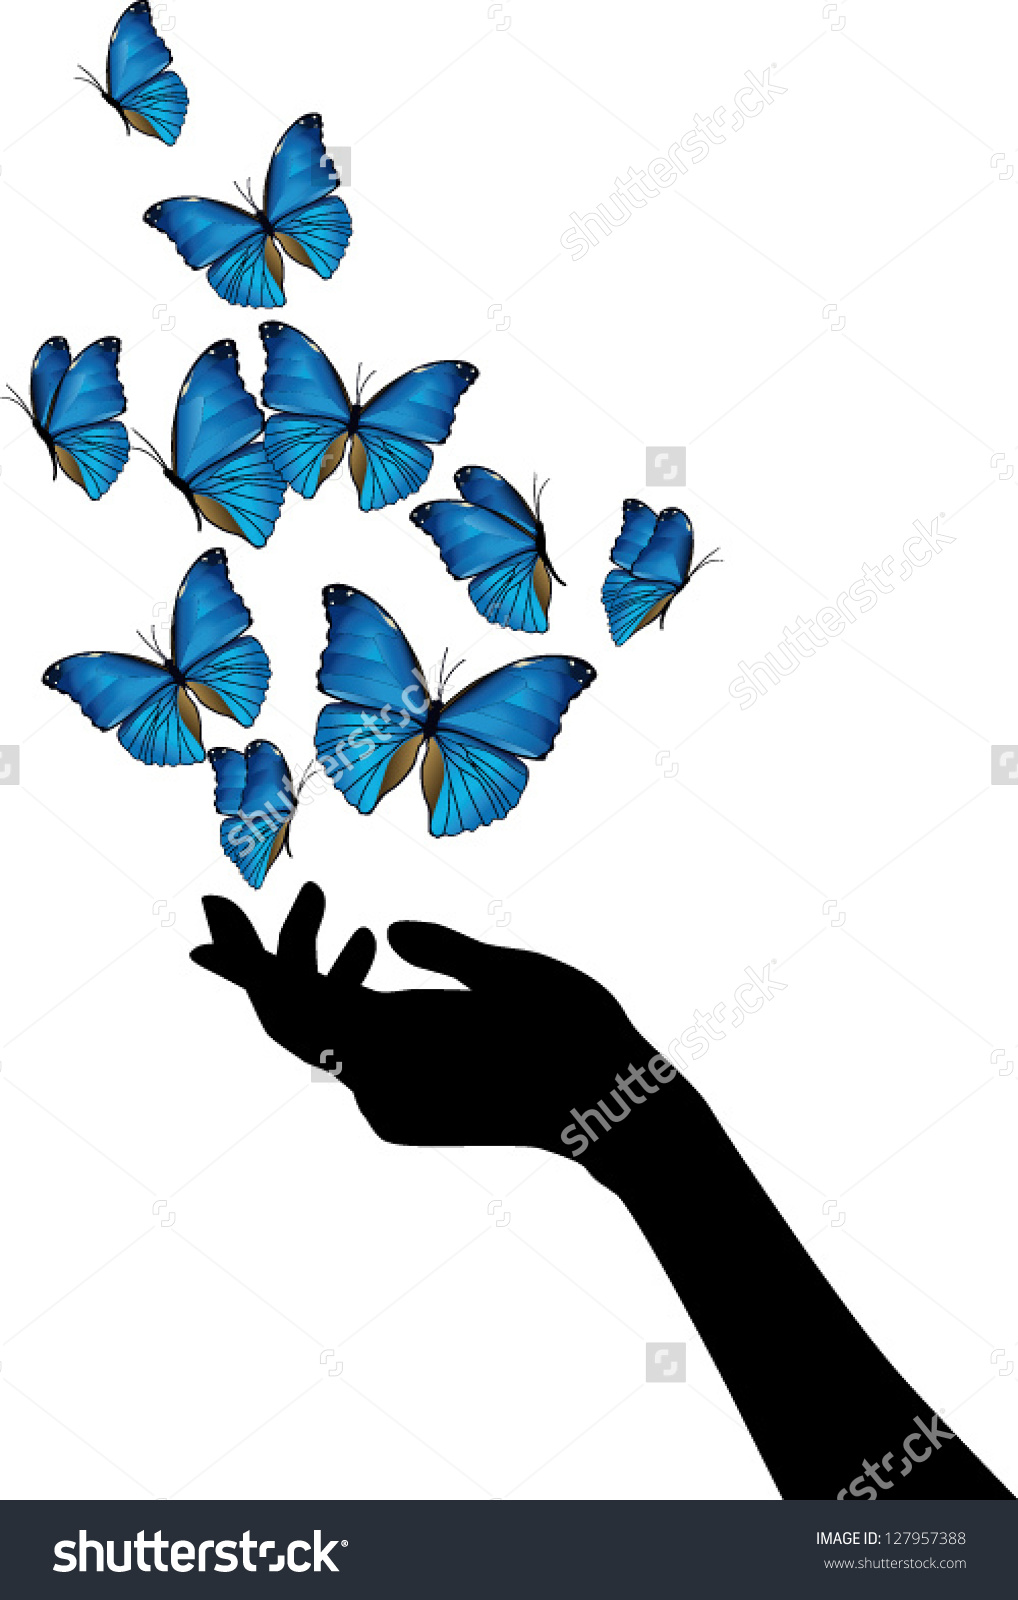 butterfly in a hand cl...